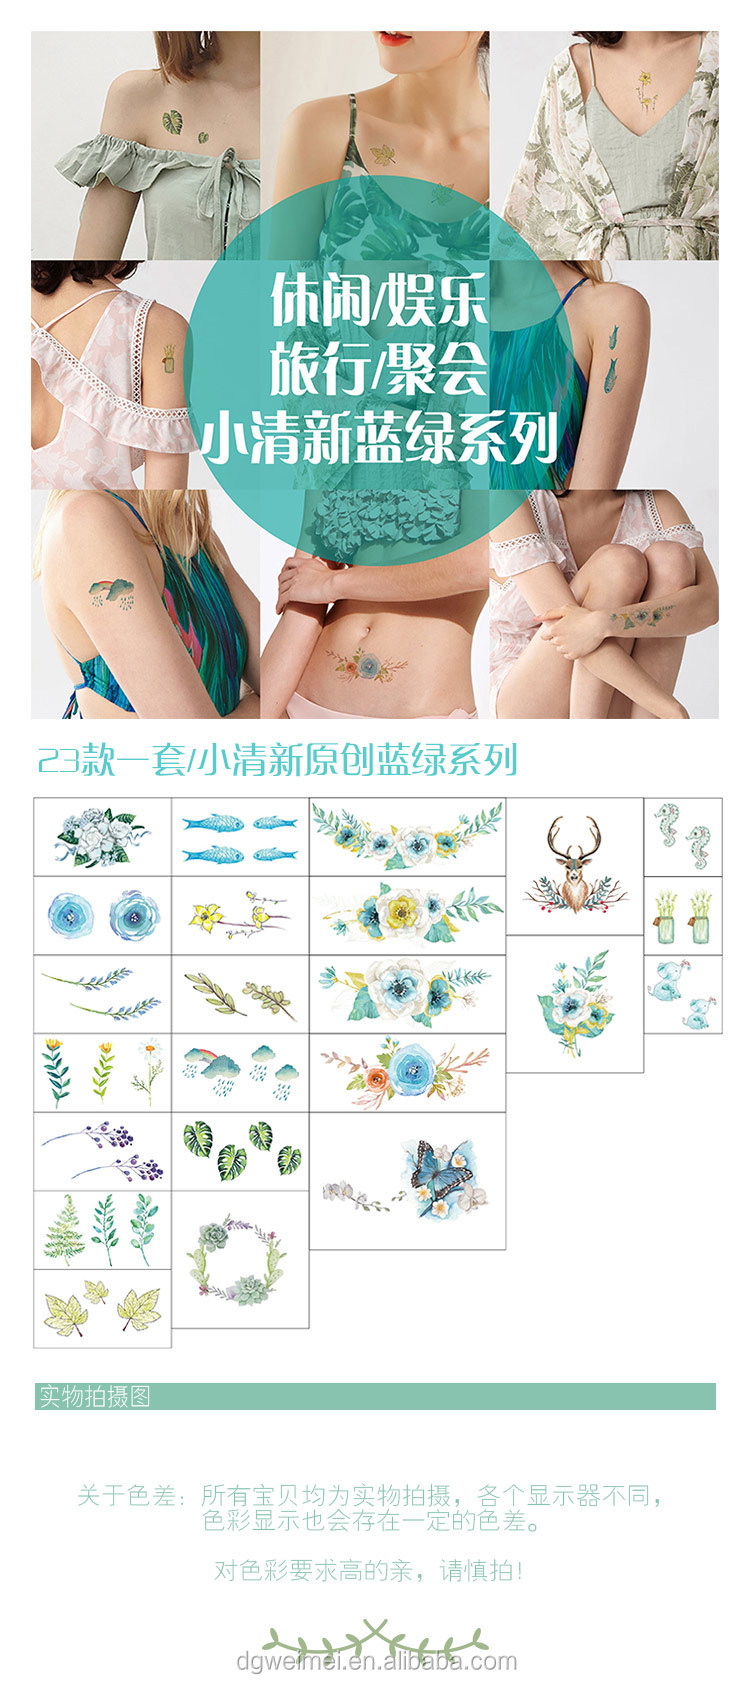 Cute Temporary Body Tattoos Water transfer, Waterproof Tattoo,Body Tattoo